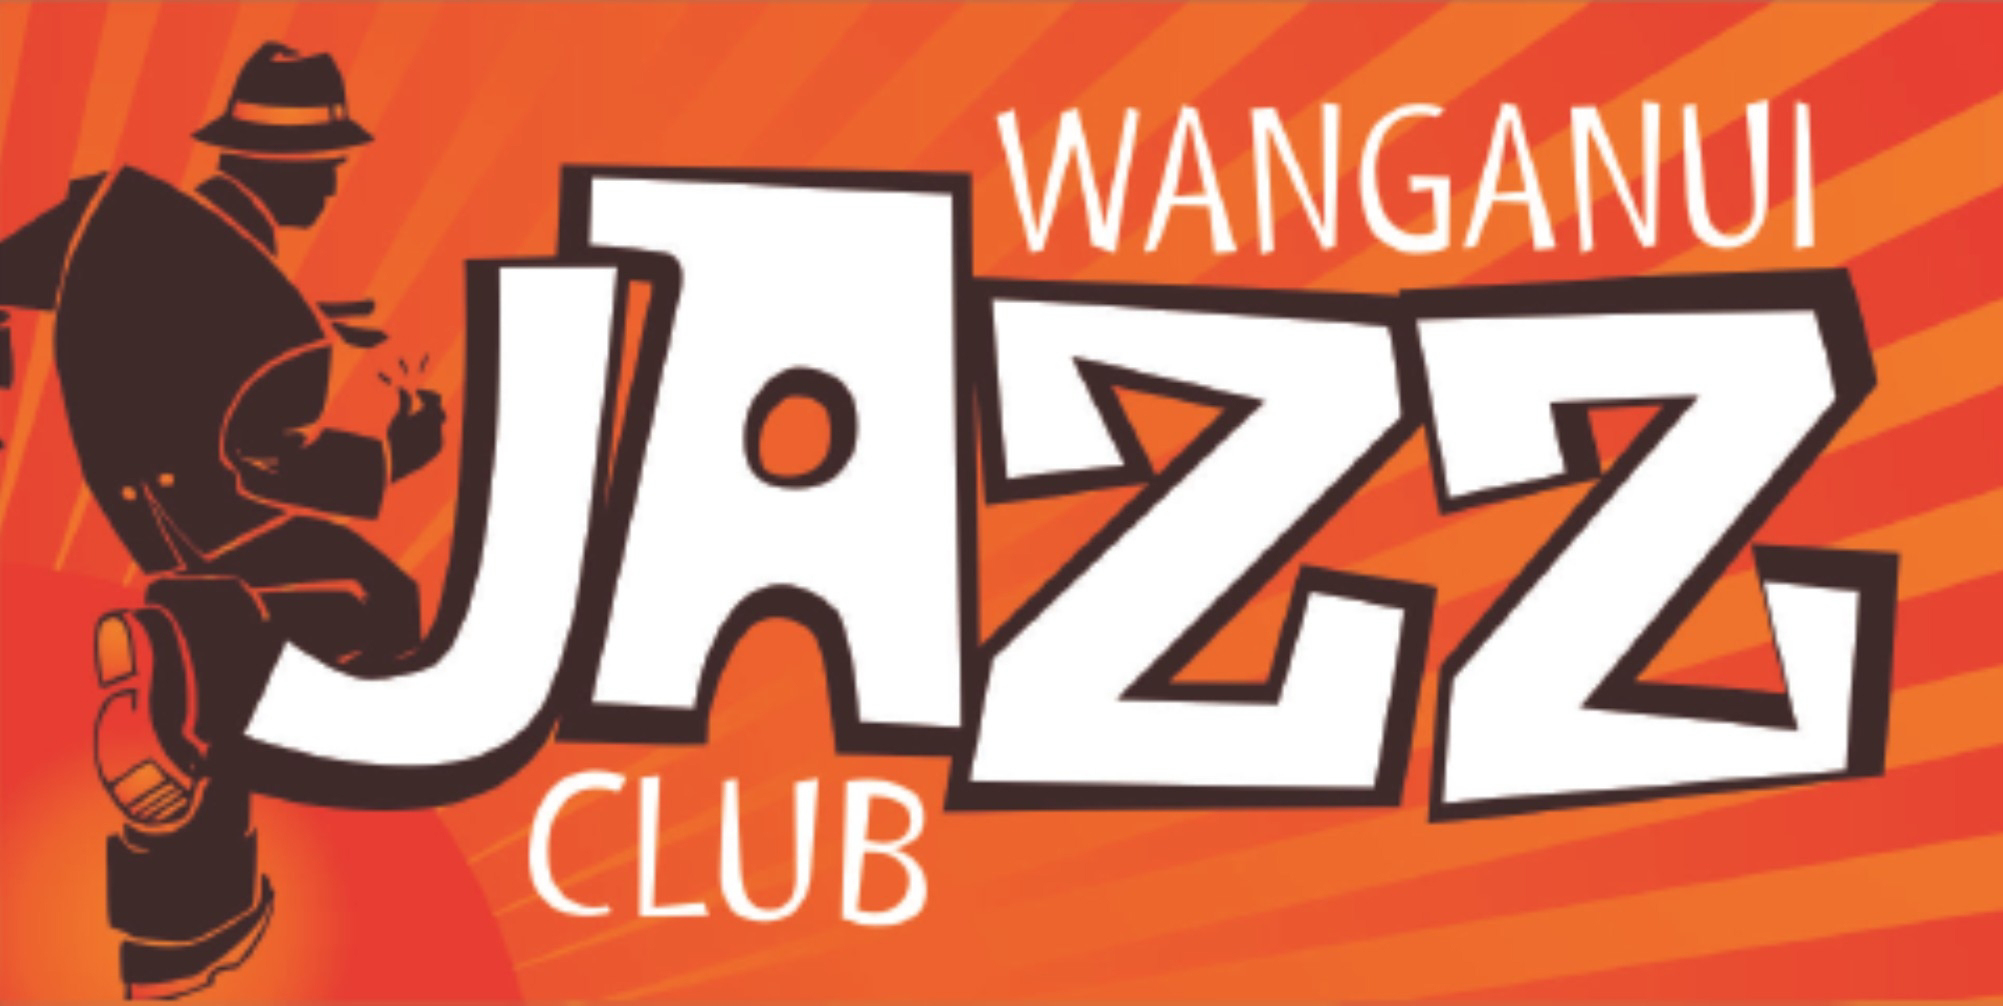 Wanganui Jazz Club